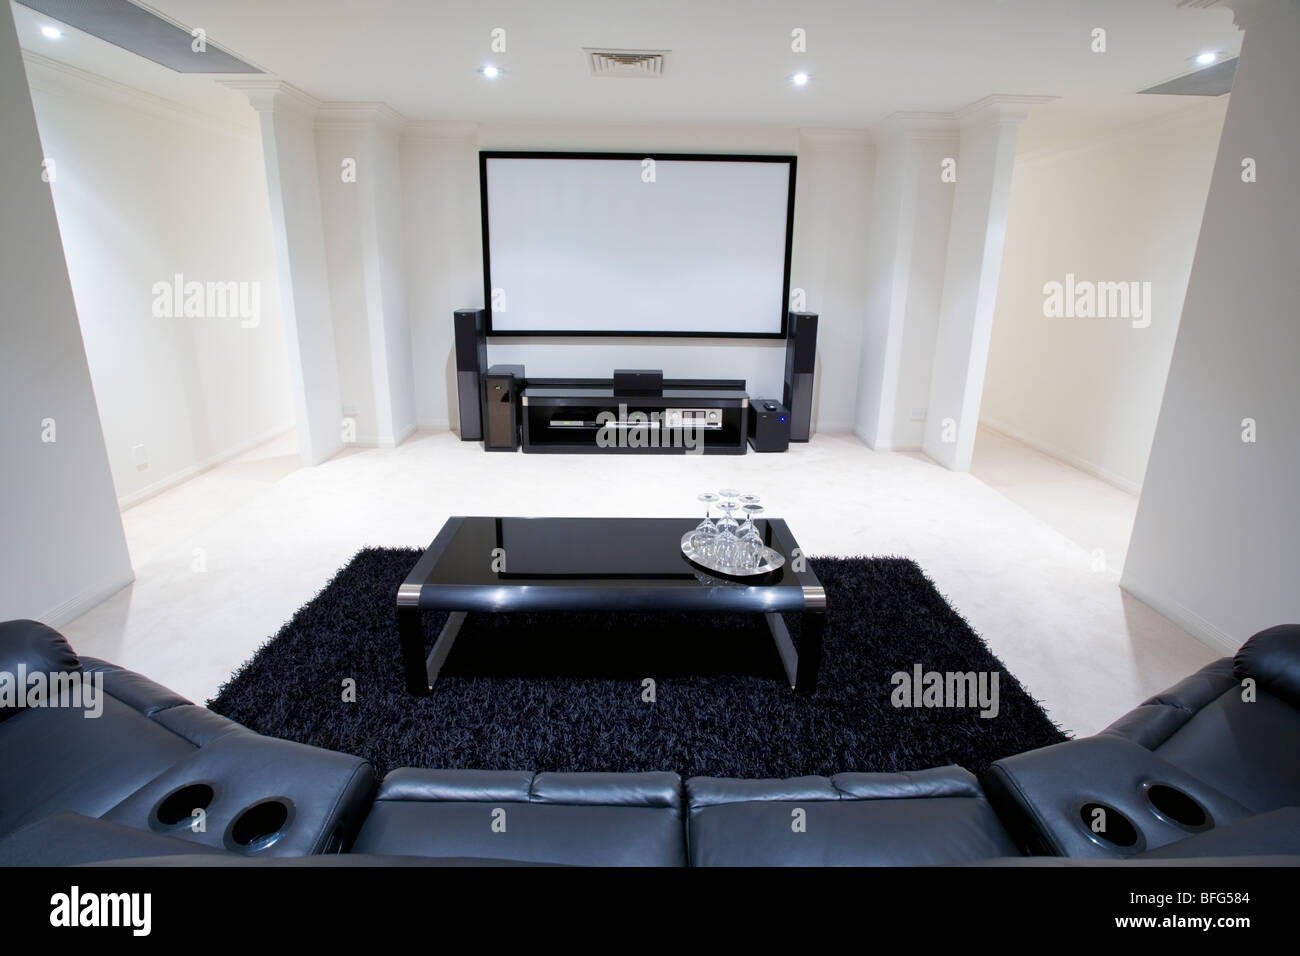 home theater room with black leather recliner chairs black rug and